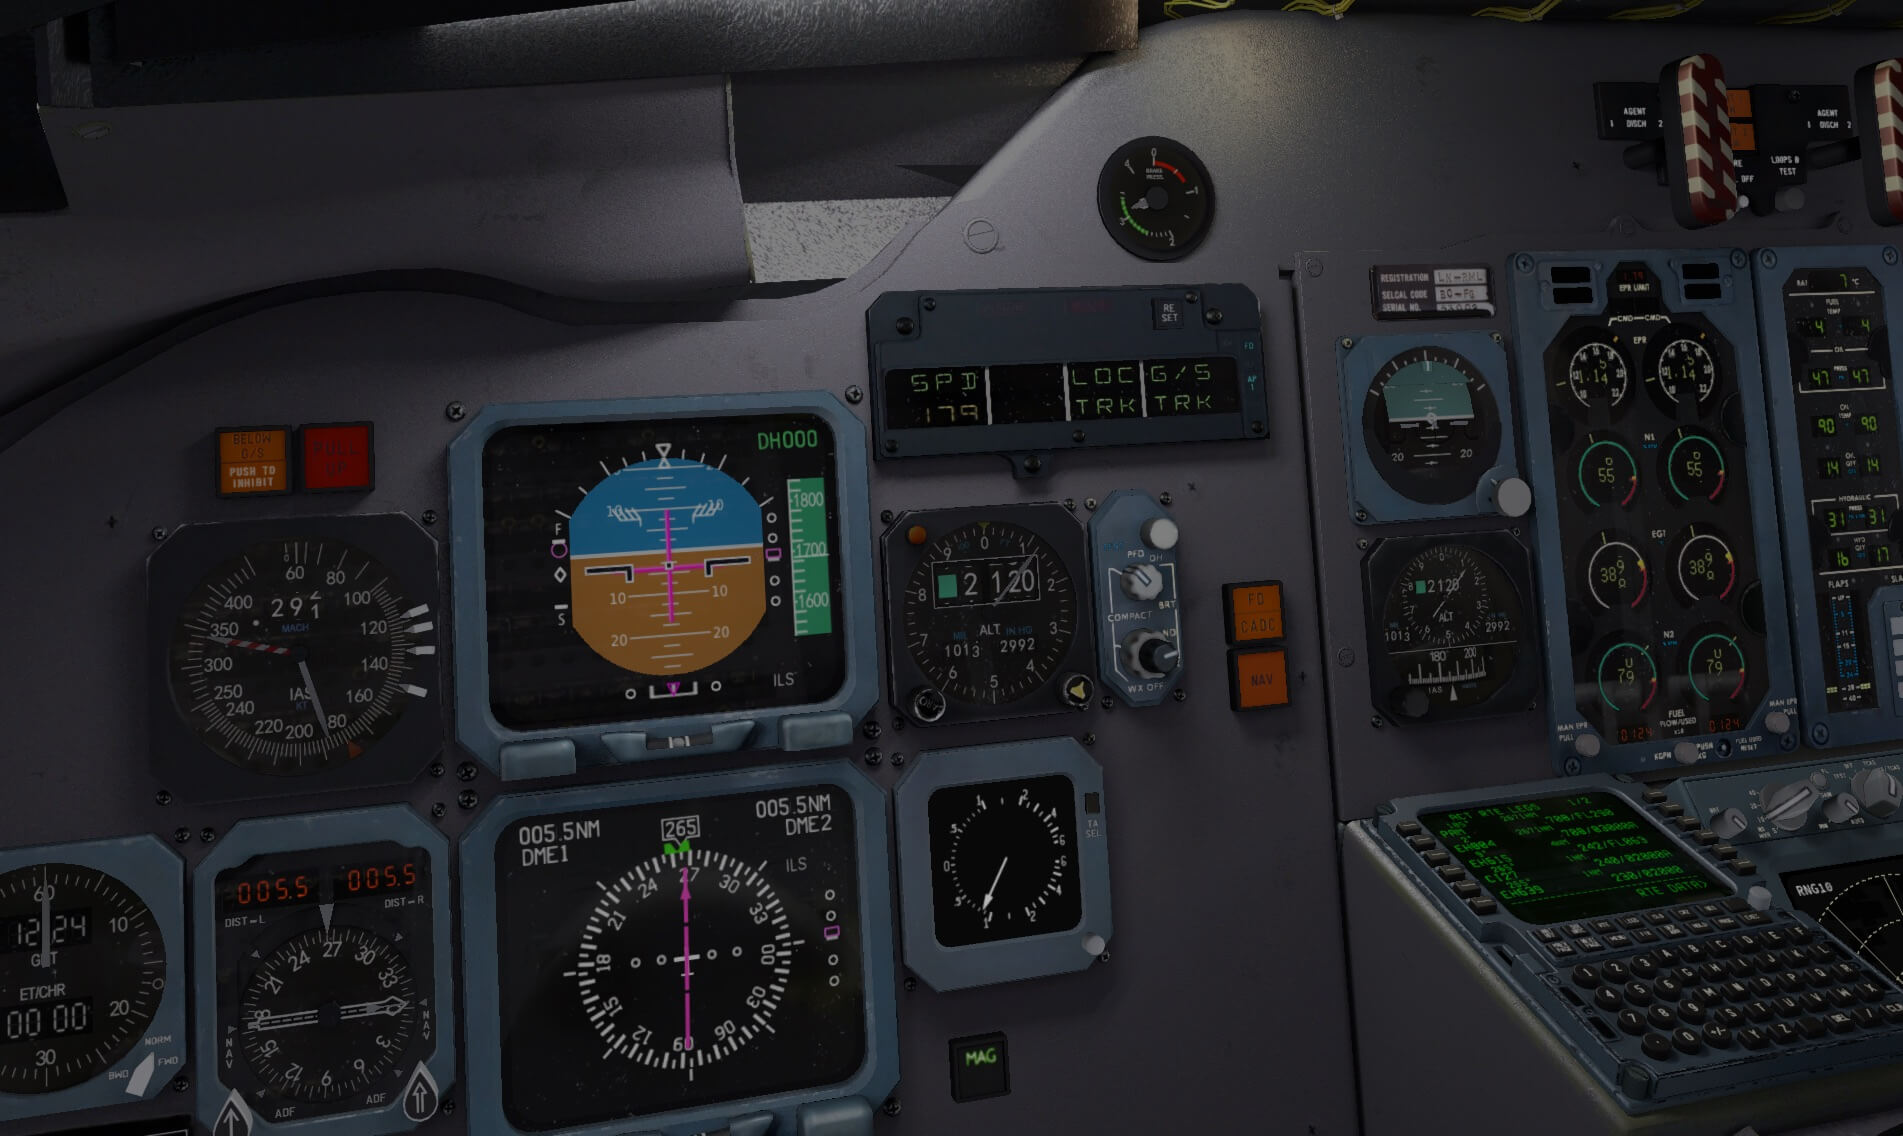 Rotate-MD-80-XP11_56